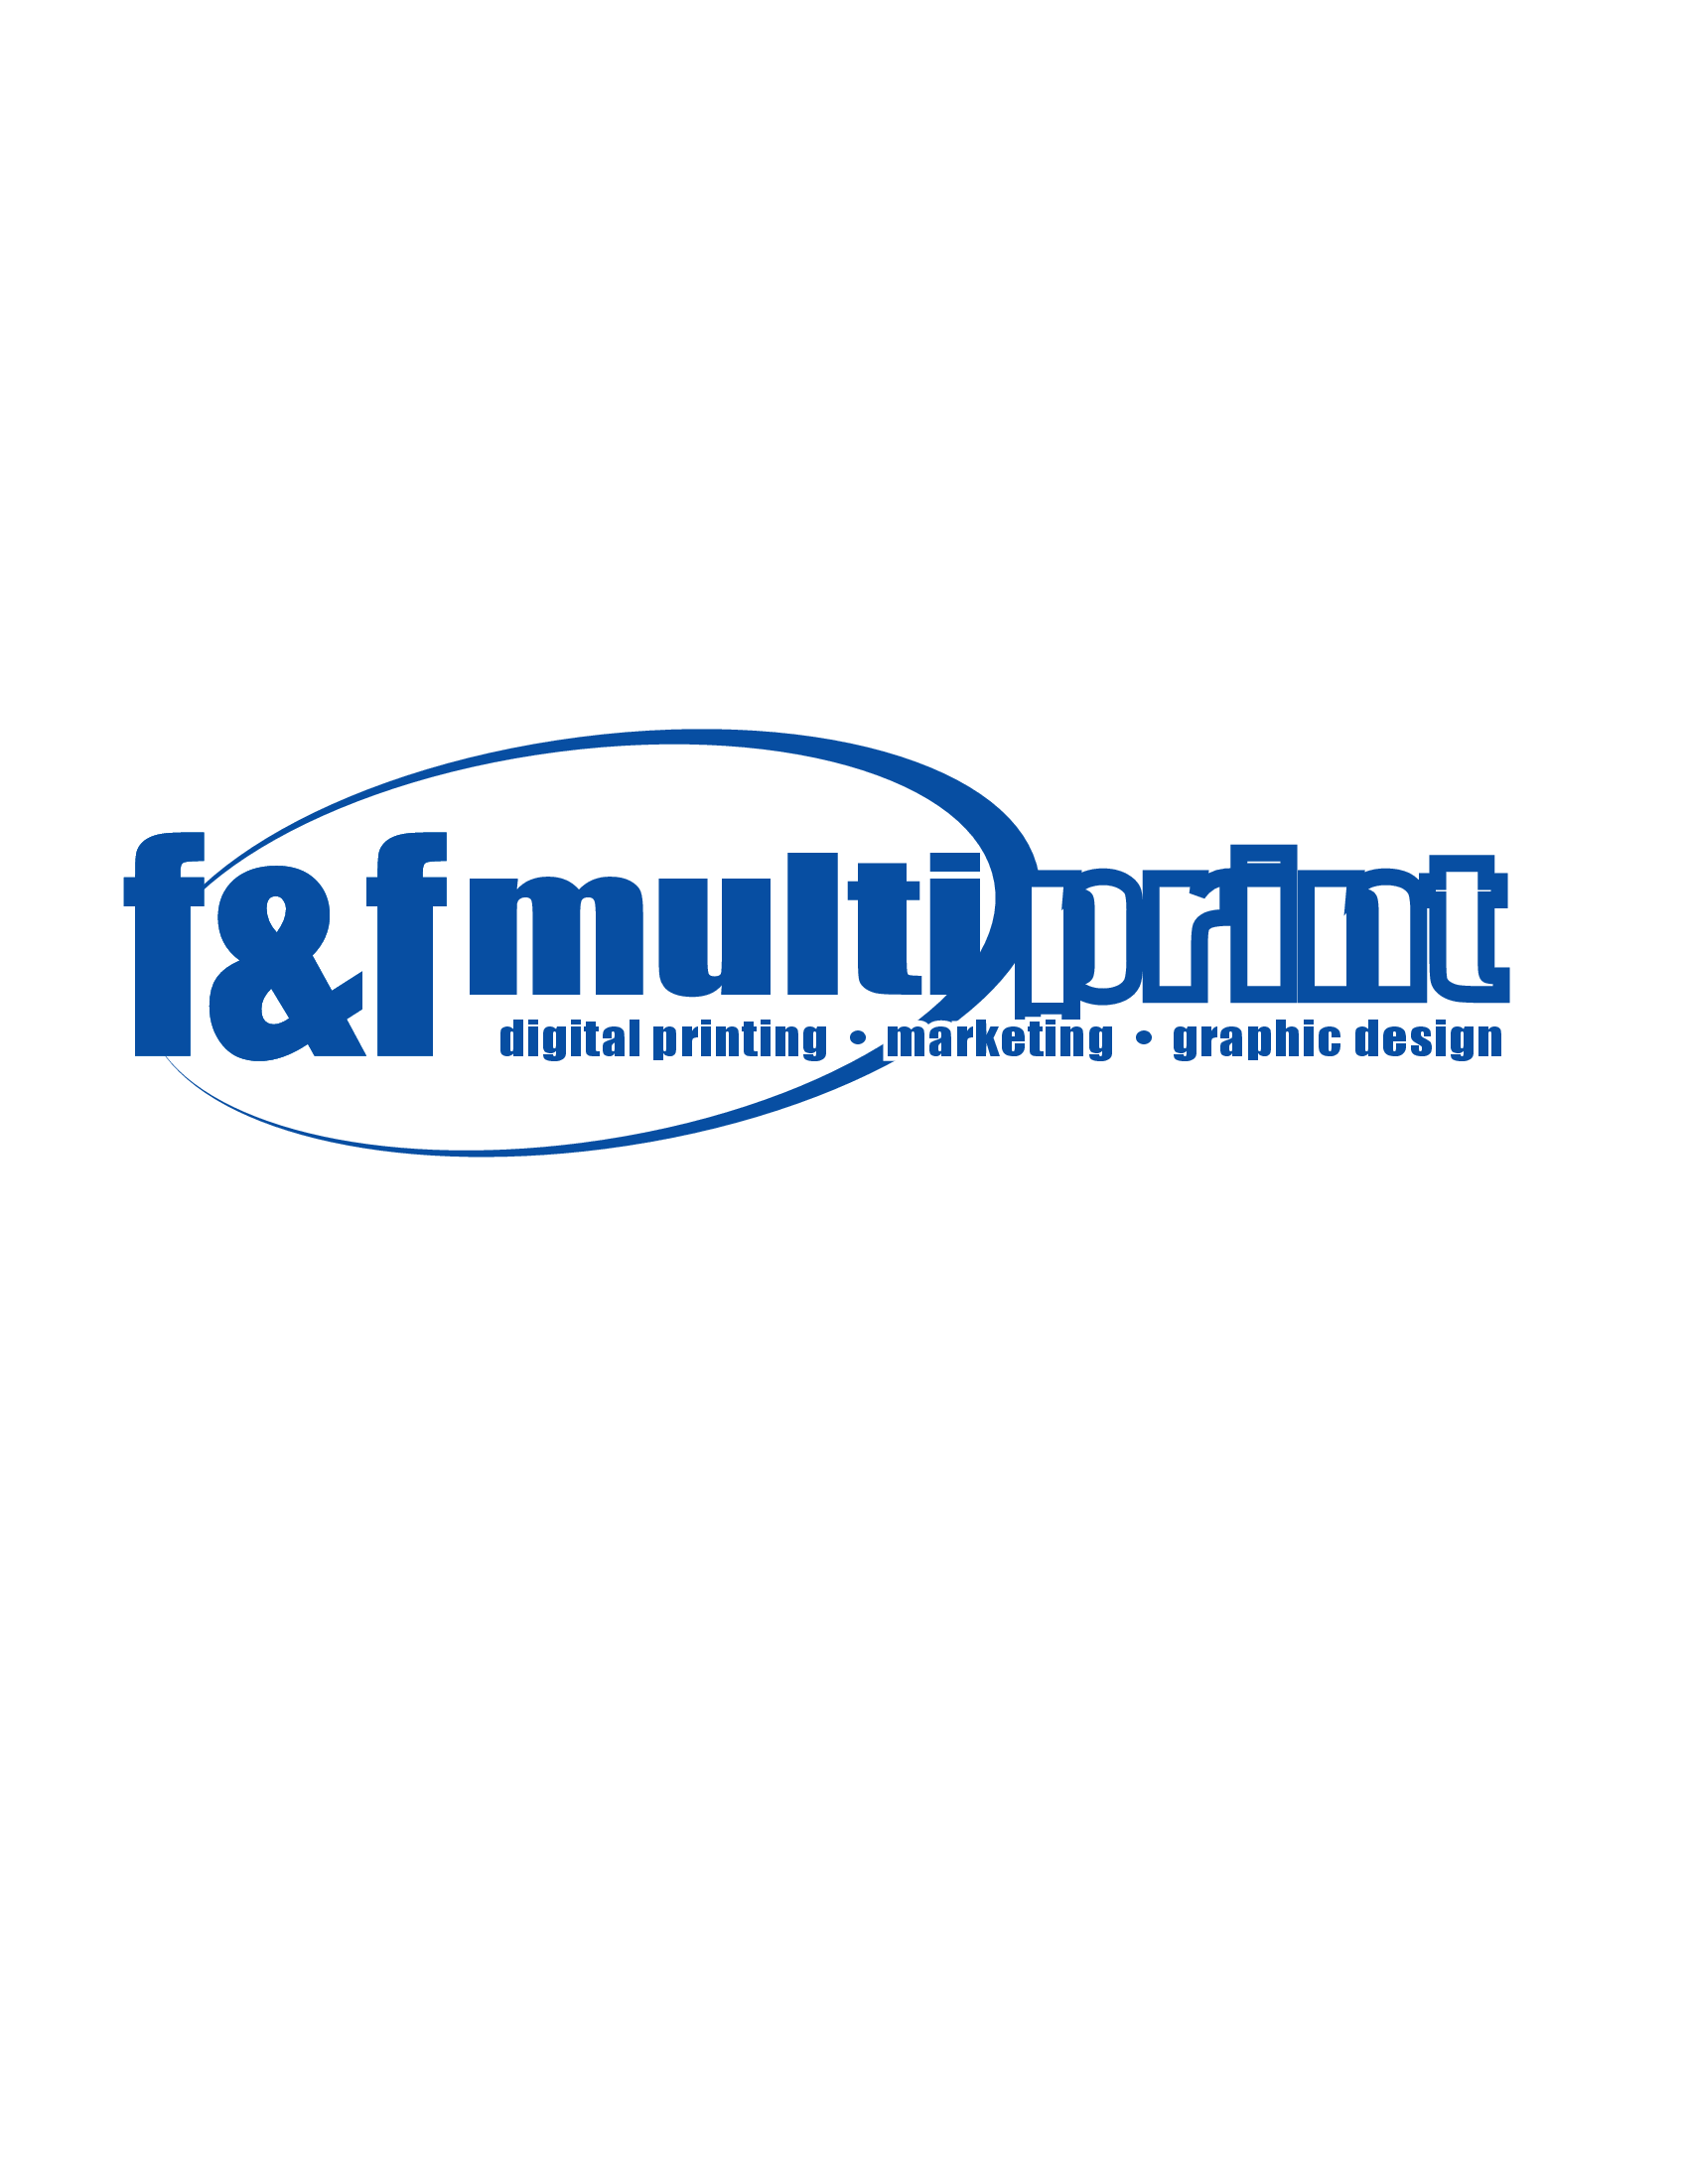 F&F Multiprint - Providing print and graphics-creative services to compliment, enhance, and promote your overall brand